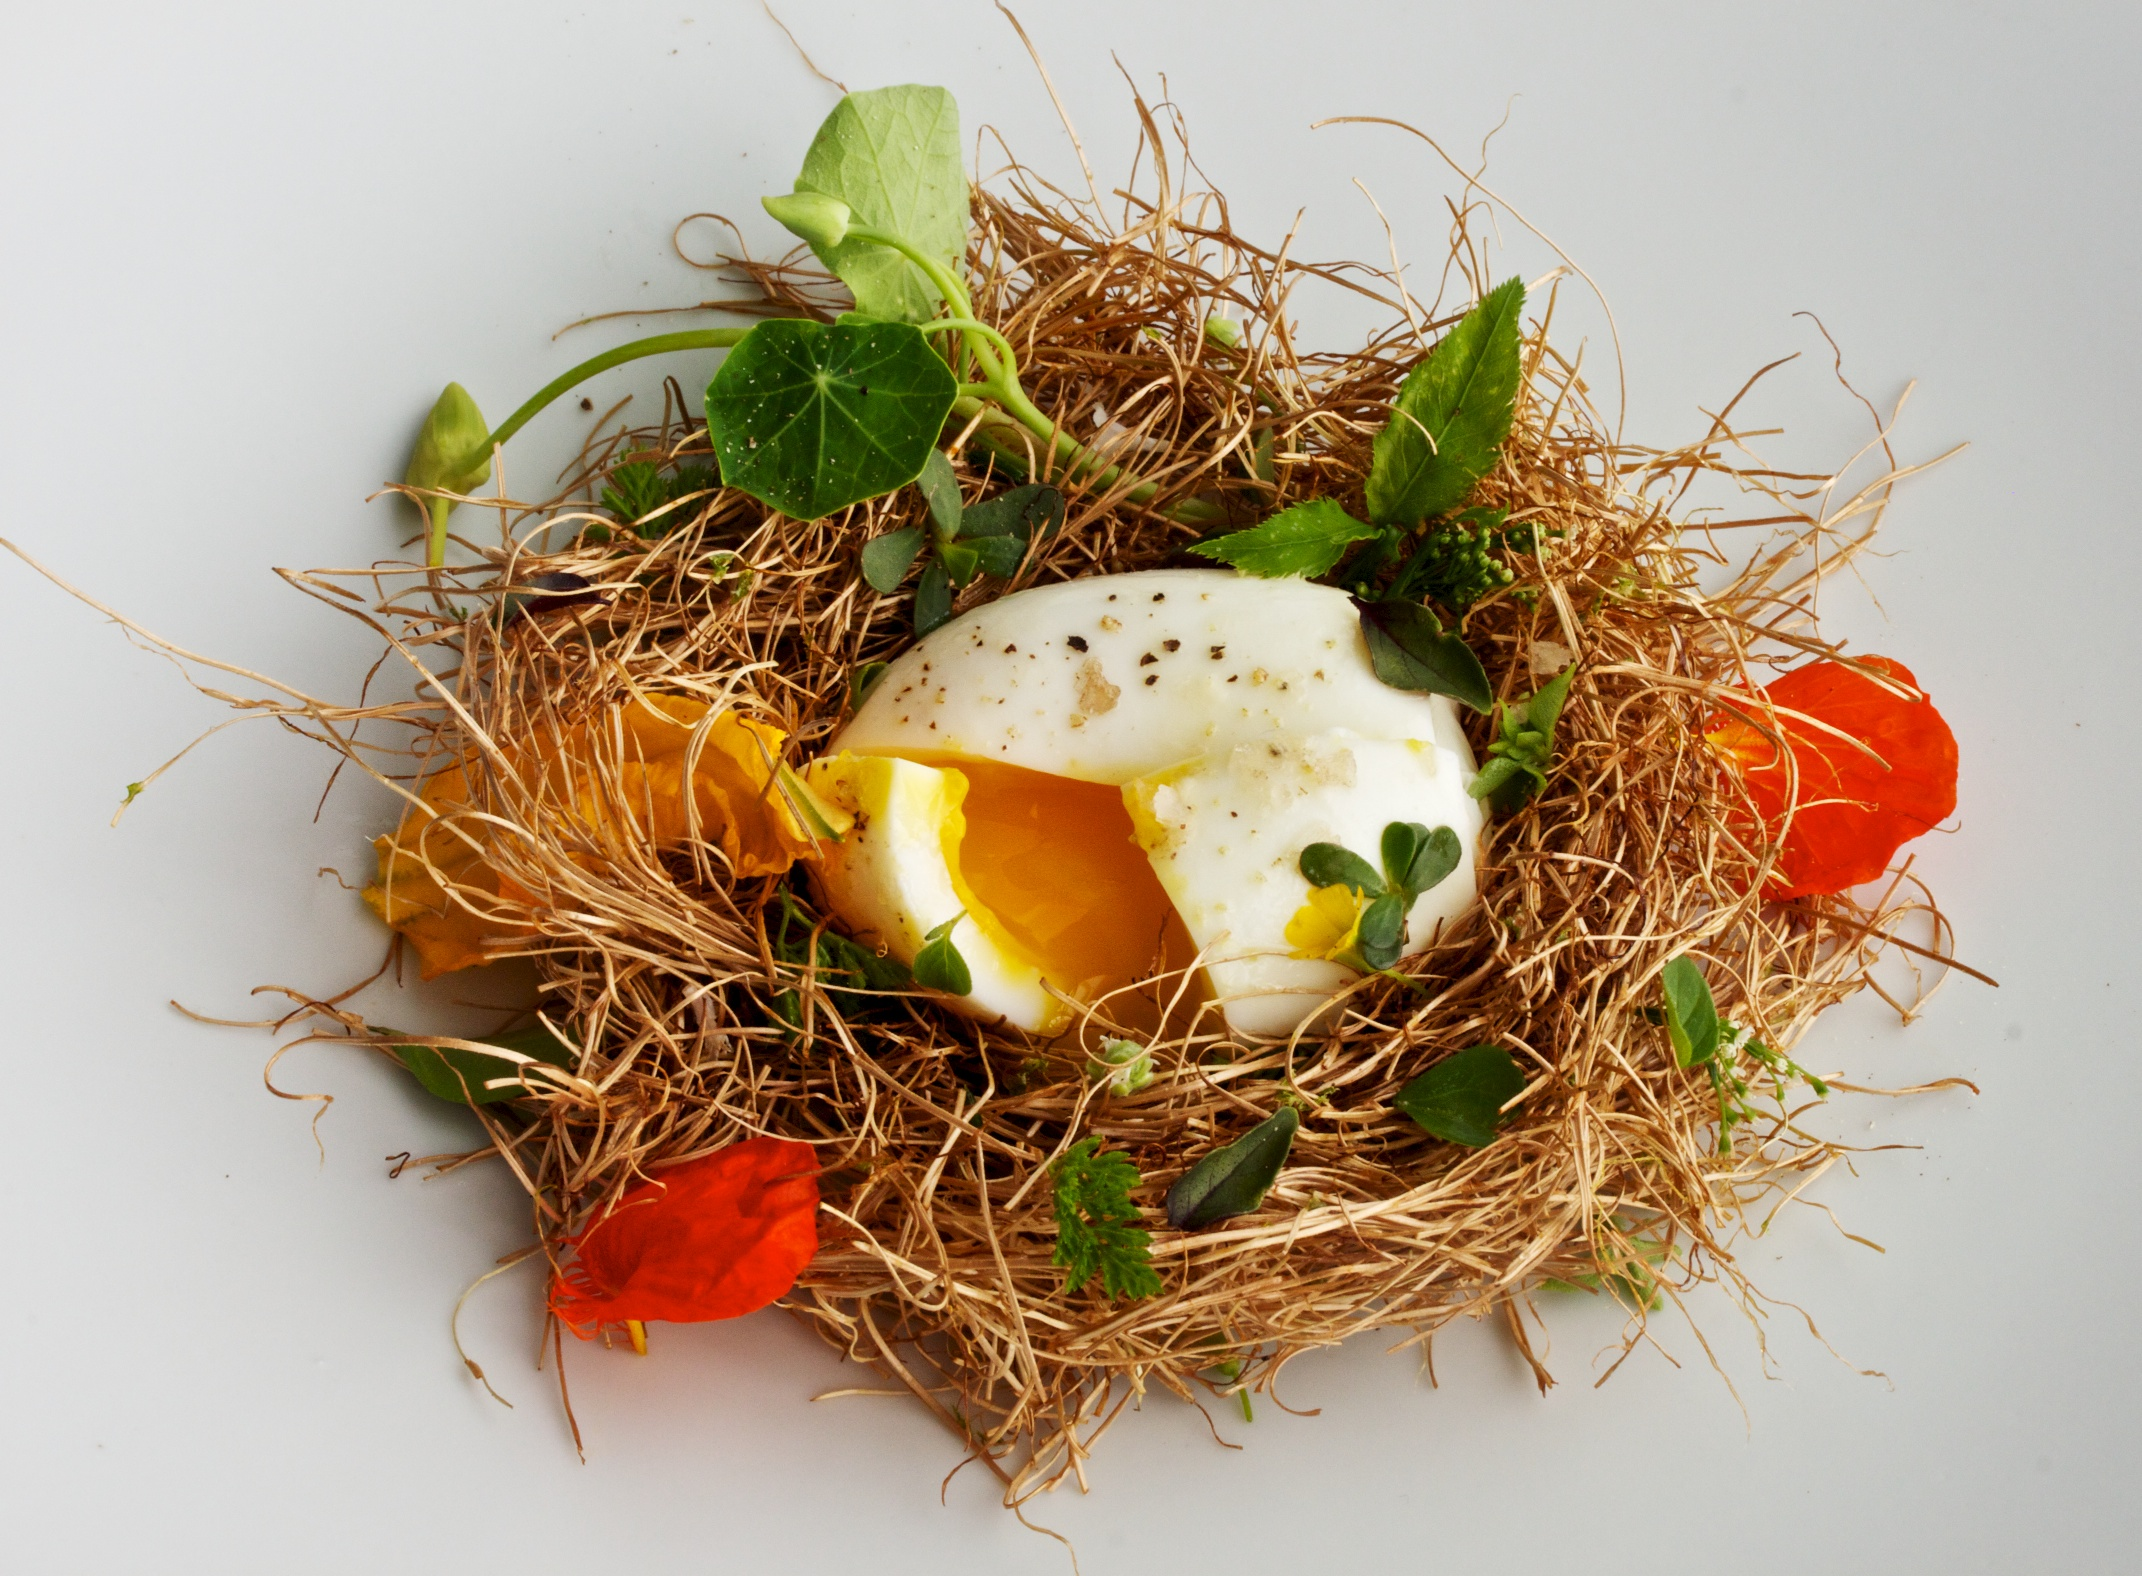 IDEAS IN FOOD: Nest Egg